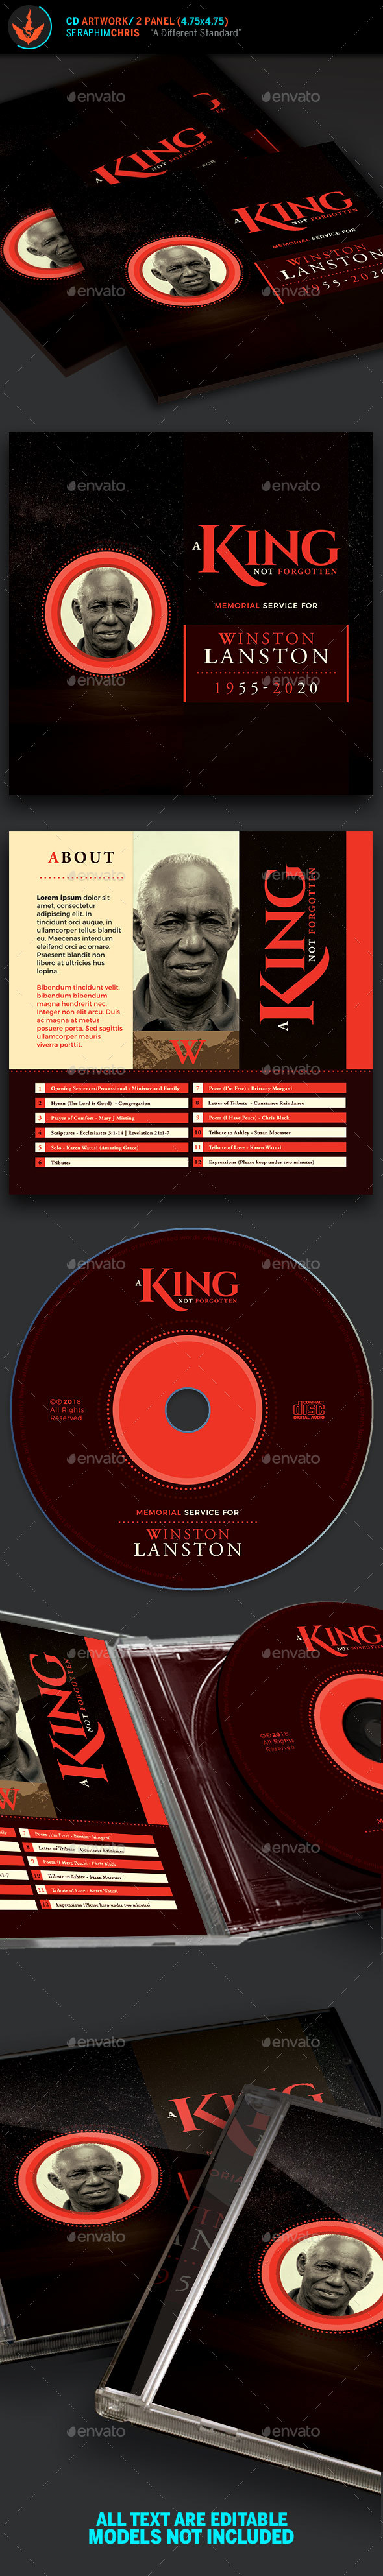 King Funeral CD Artwork Template - CD & DVD Artwork Print Templates